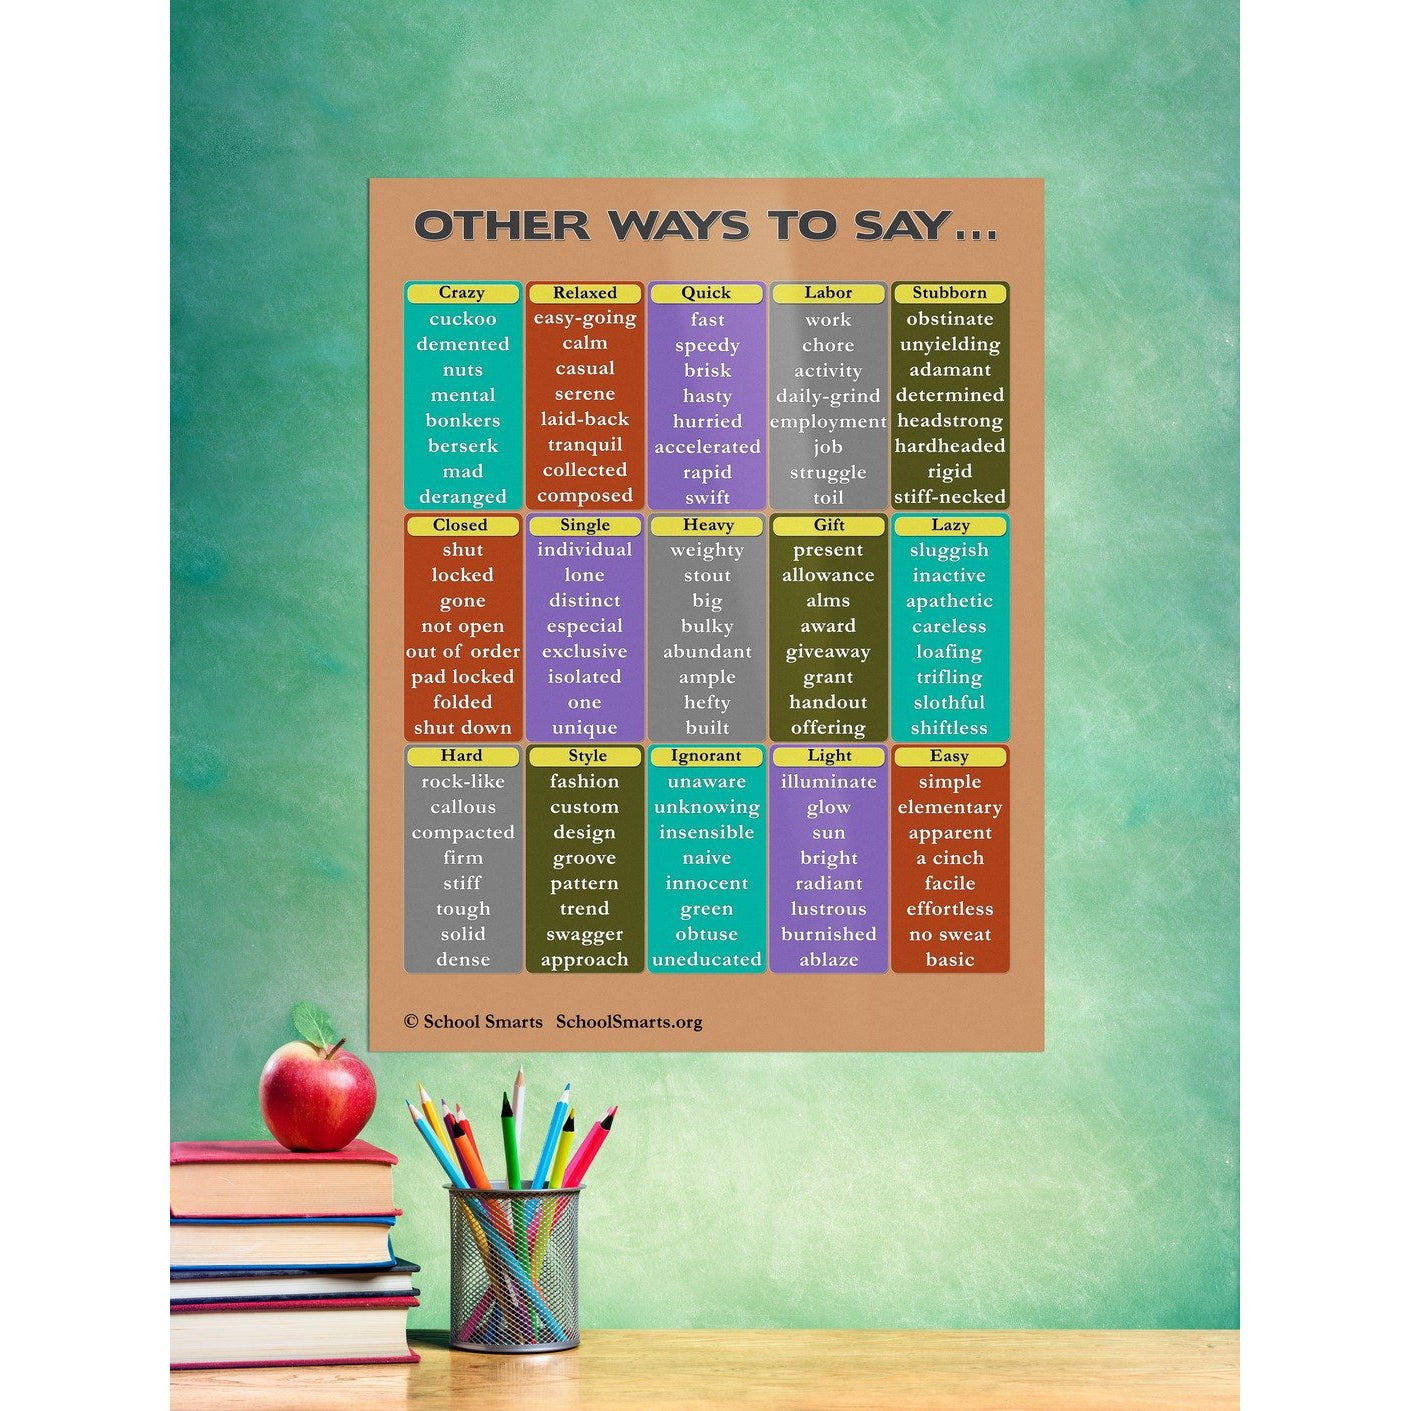 Synonyms Chart School Smarts Understand distinct meaning and enrich your. synonyms chart school smarts